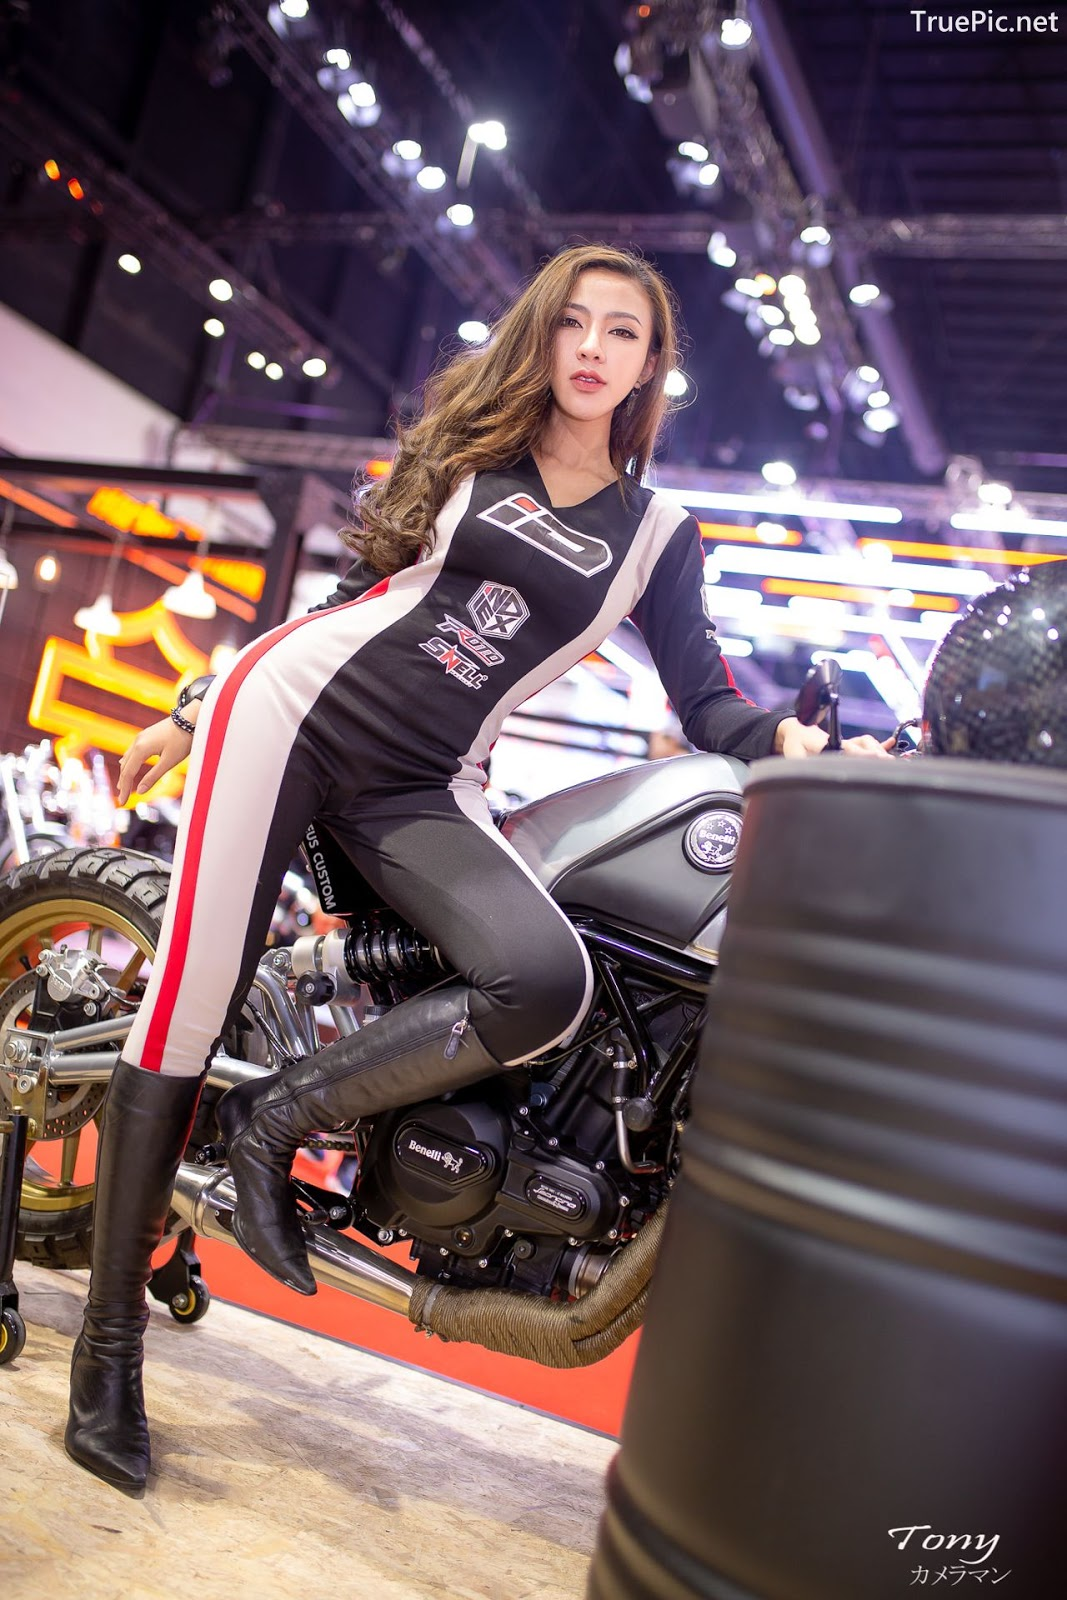 Image-Thailand-Hot-Model-Thai-Racing-Girl-At-Motor-Show-2019-TruePic.net- Picture-7